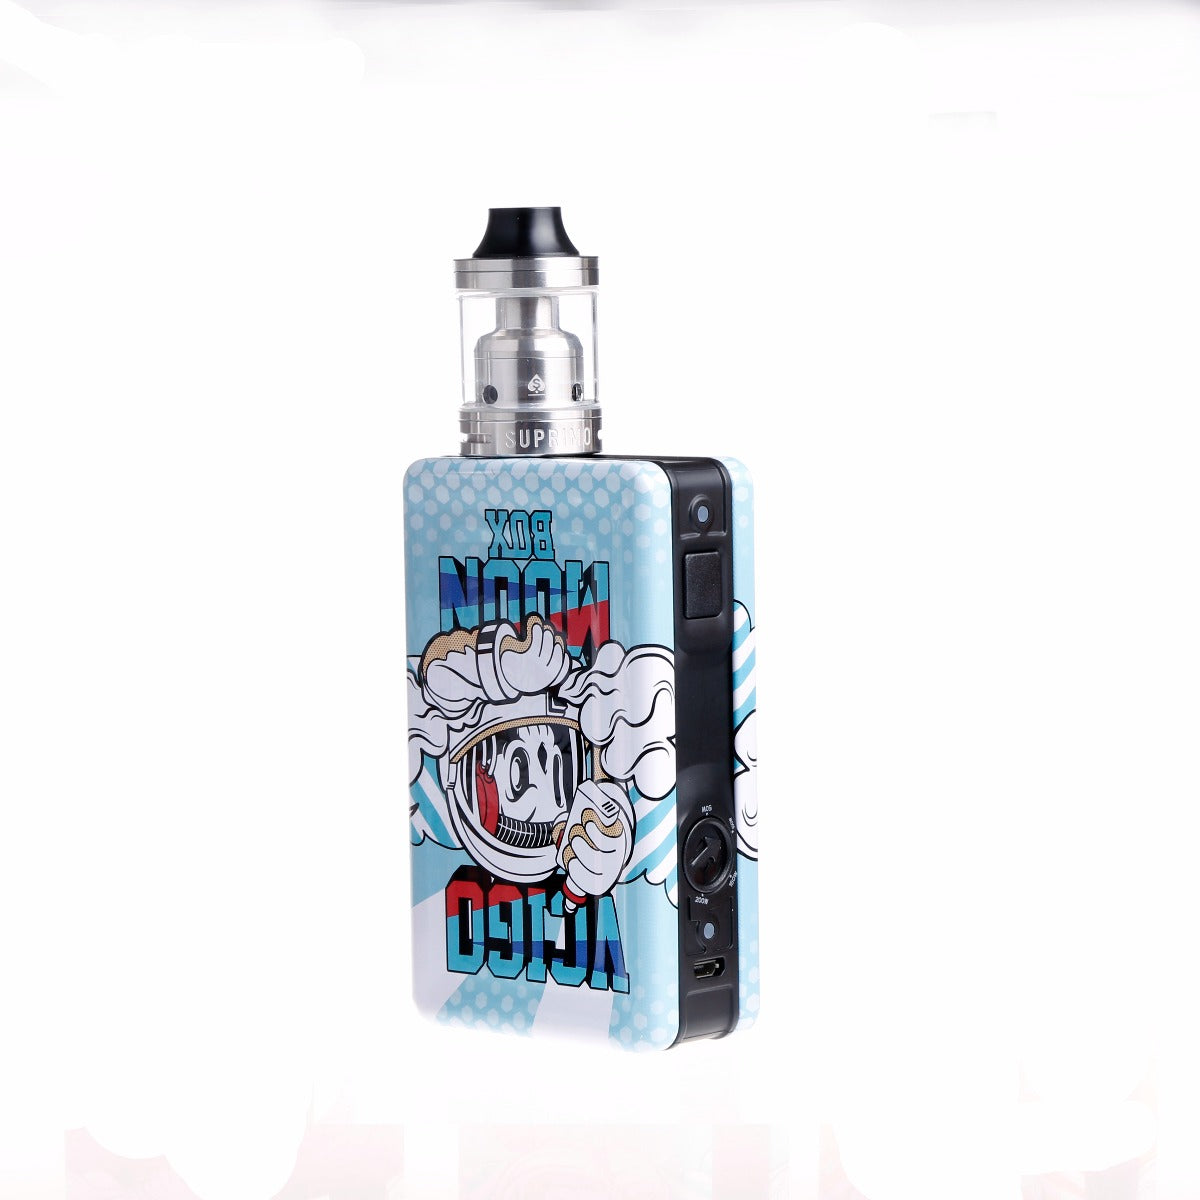 Vcigo Moon Box Kit